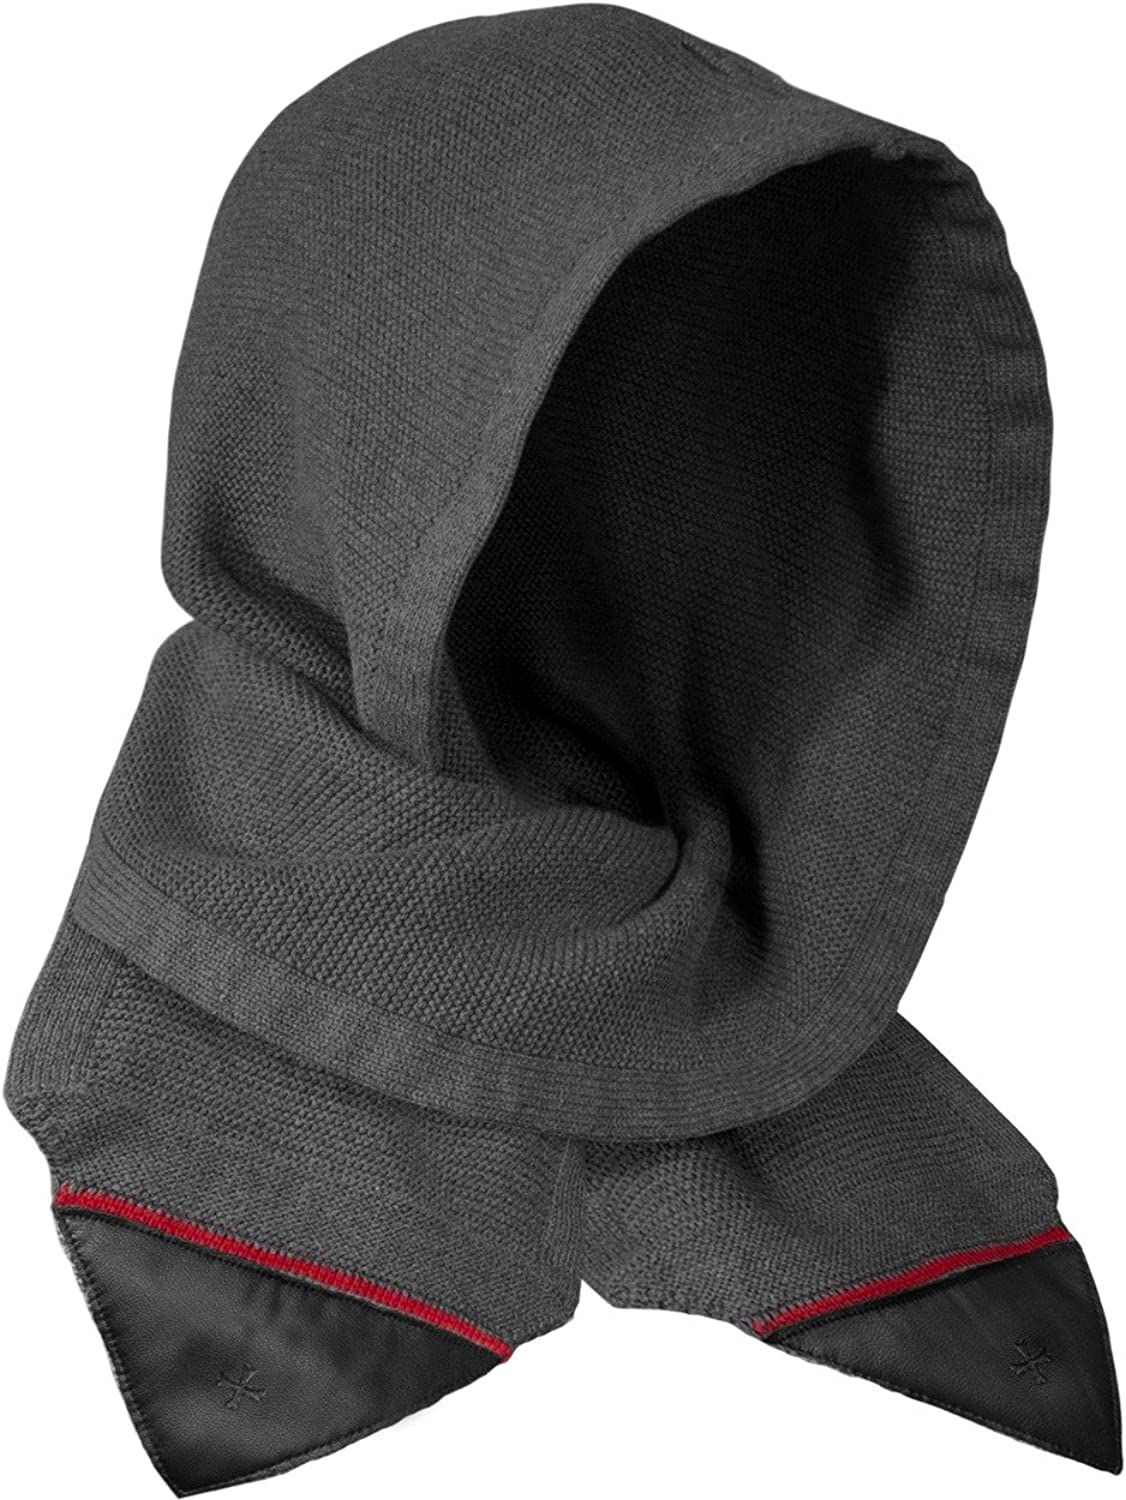 Deluxe Adult Costumes - Men's Assassin's Creed Solomon's mantle gray hooded scarf with Templar leather embellishments.